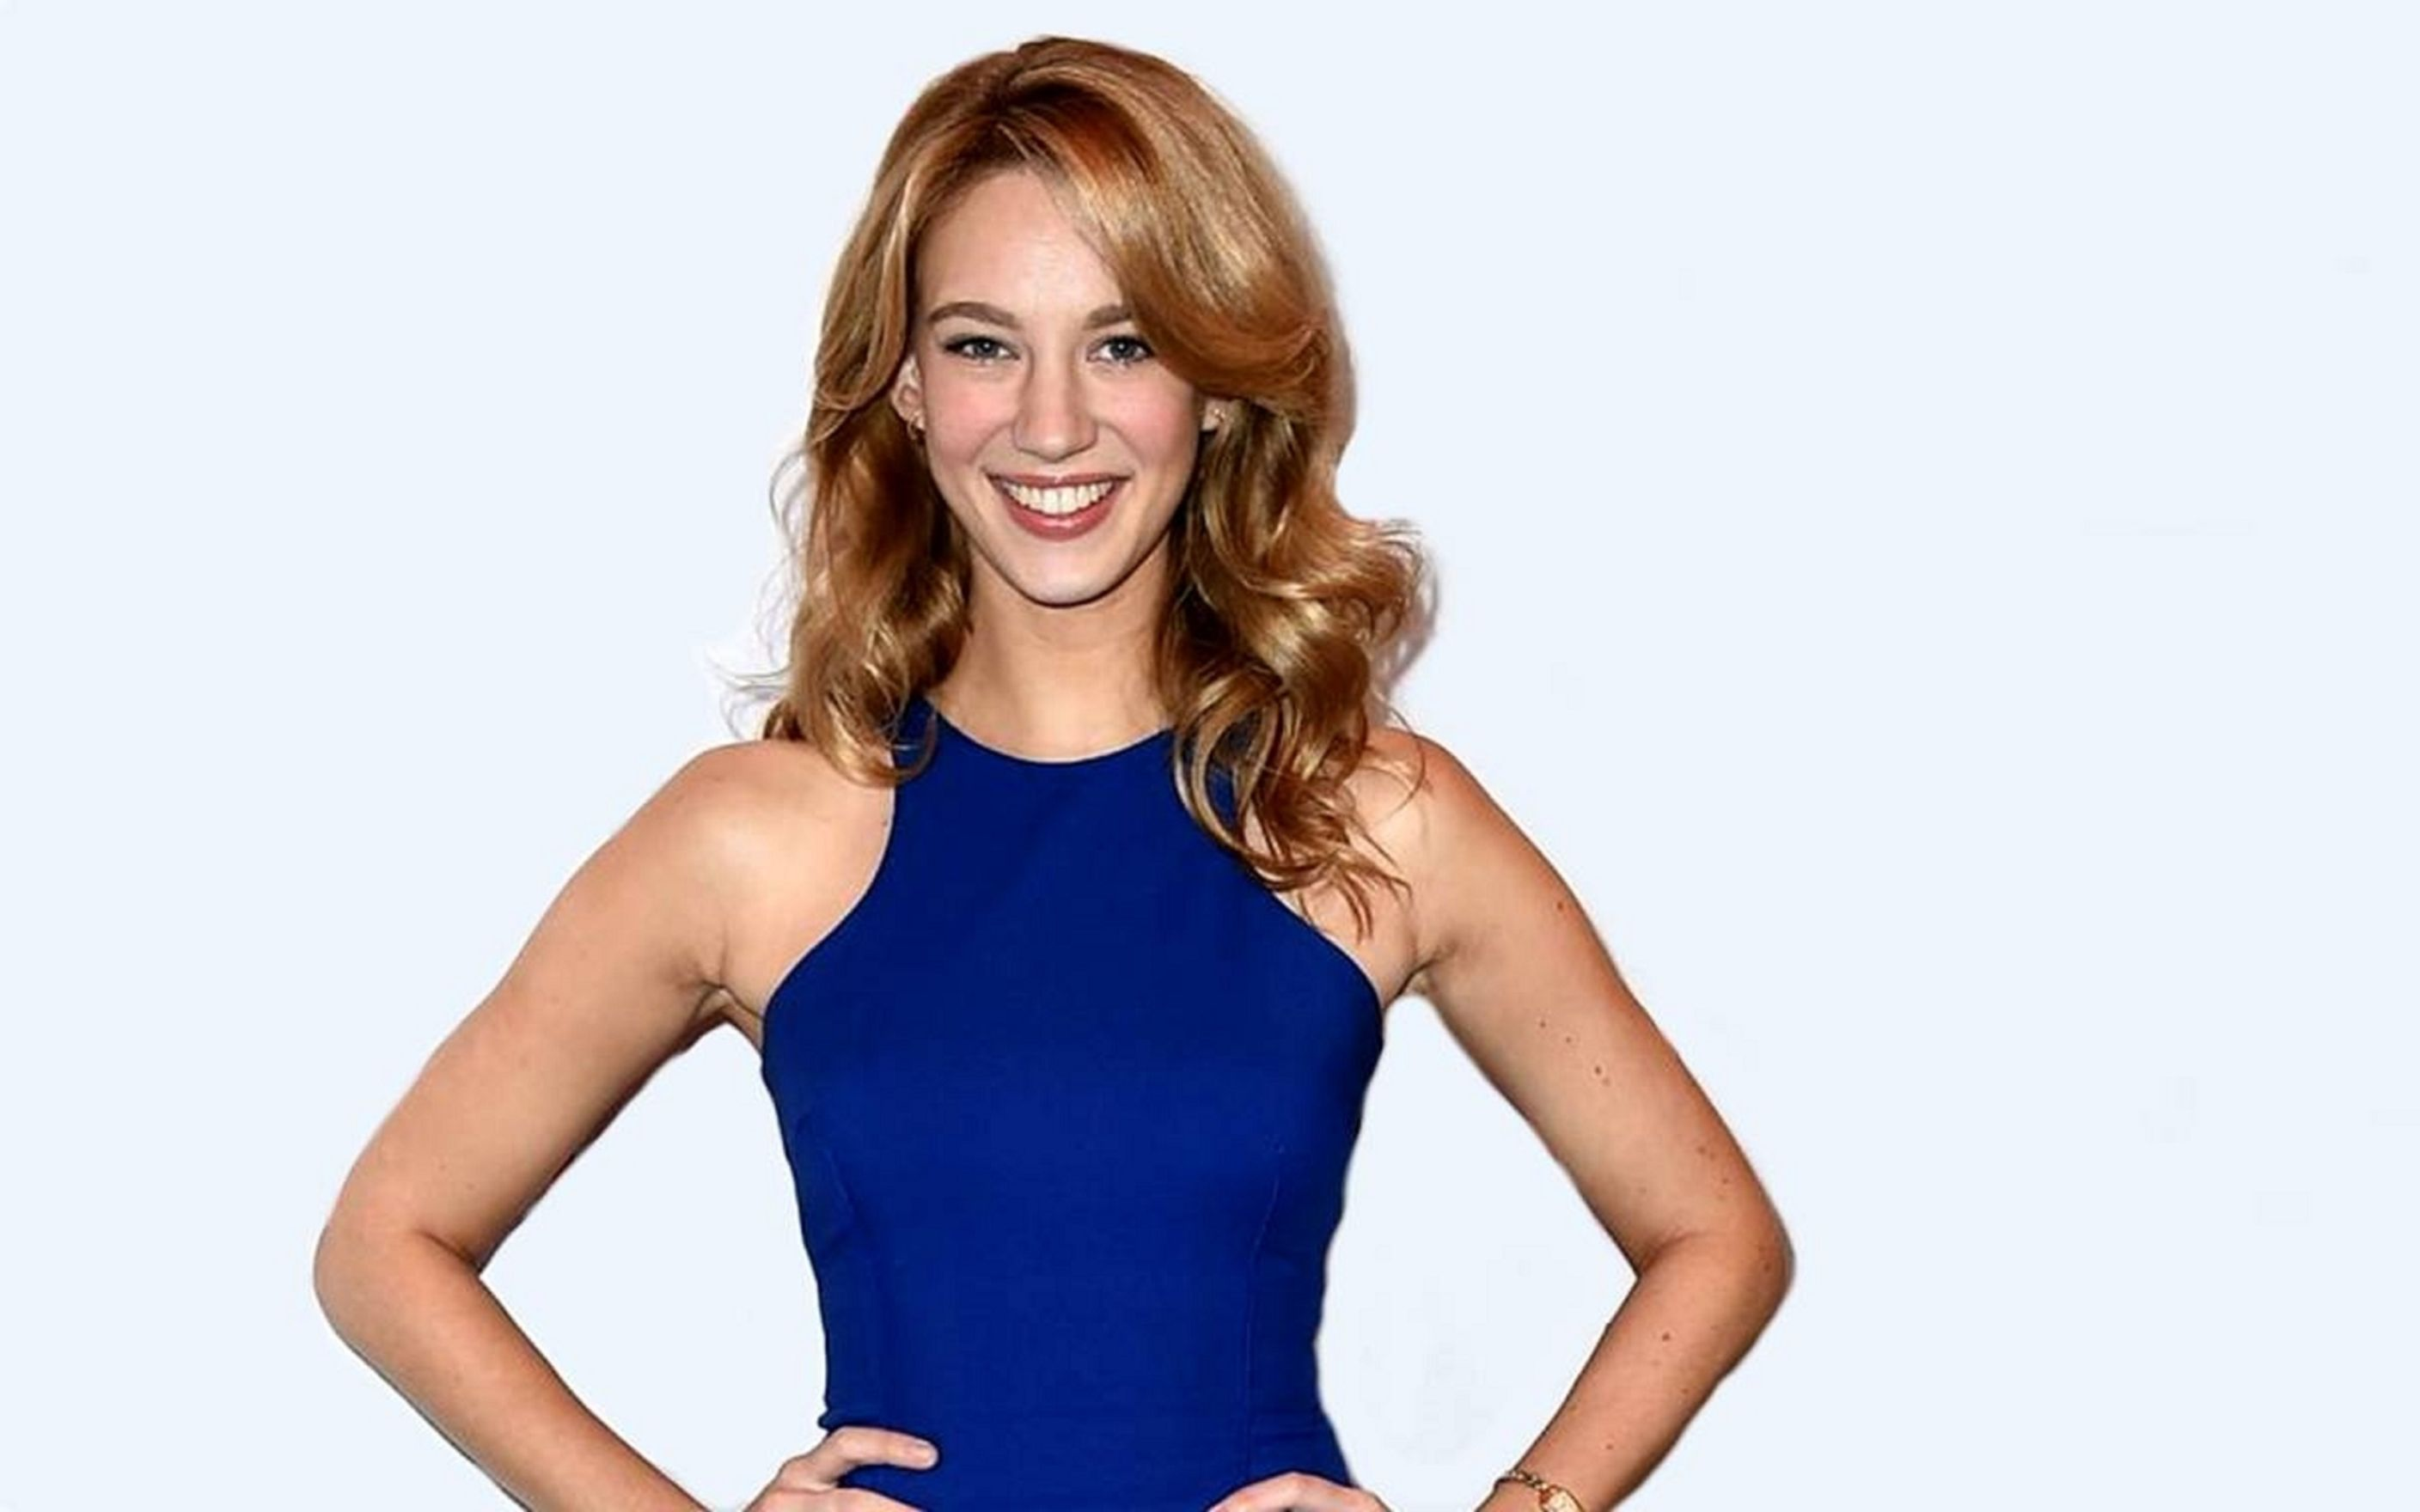 Download free HD Yael Grobglas 1 Wallpaper, image